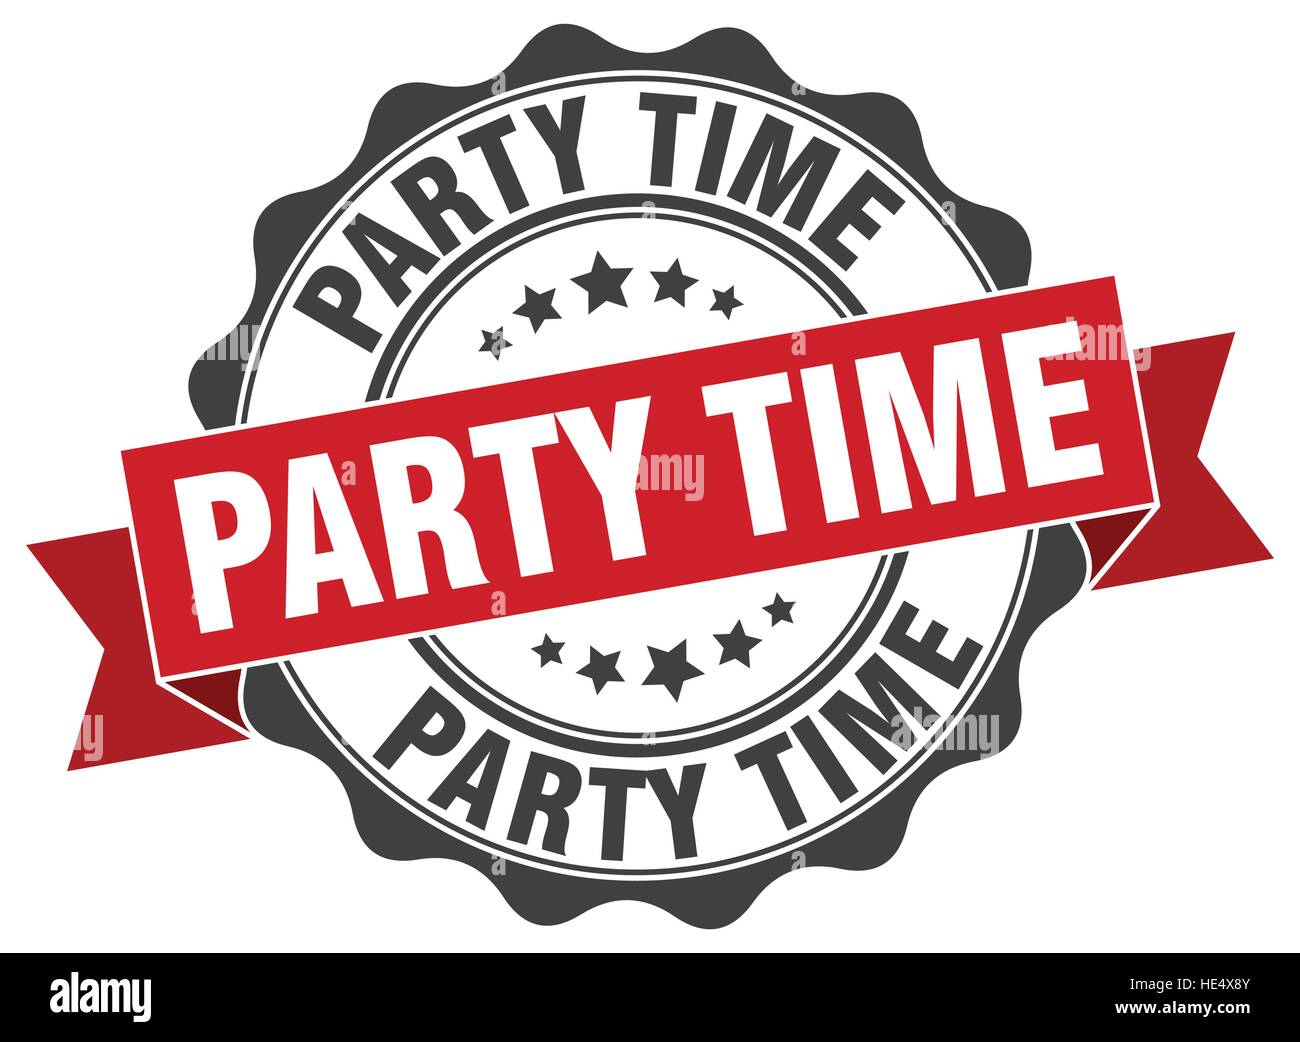 party time stamp sign seal cut out stock images pictures alamy